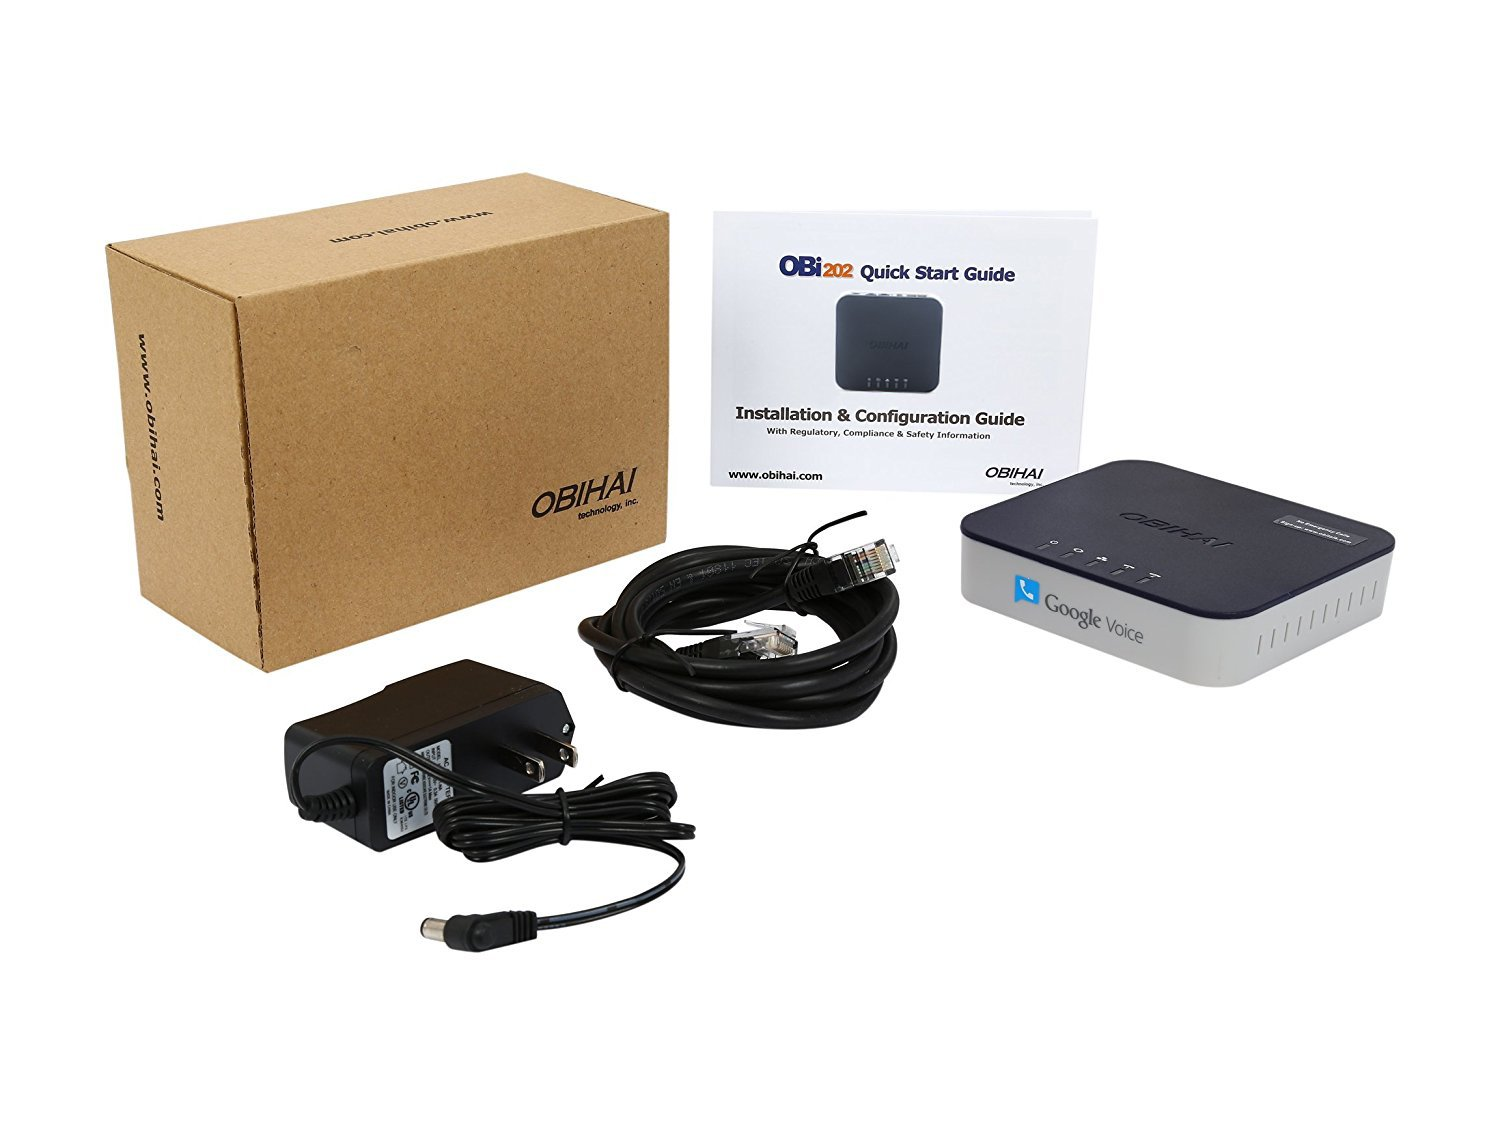 OBi202 2-Port VoIP Phone Adapter with Google Voice and Fax Support for Home and SOHO Phone Service by Obihai (Image #3)